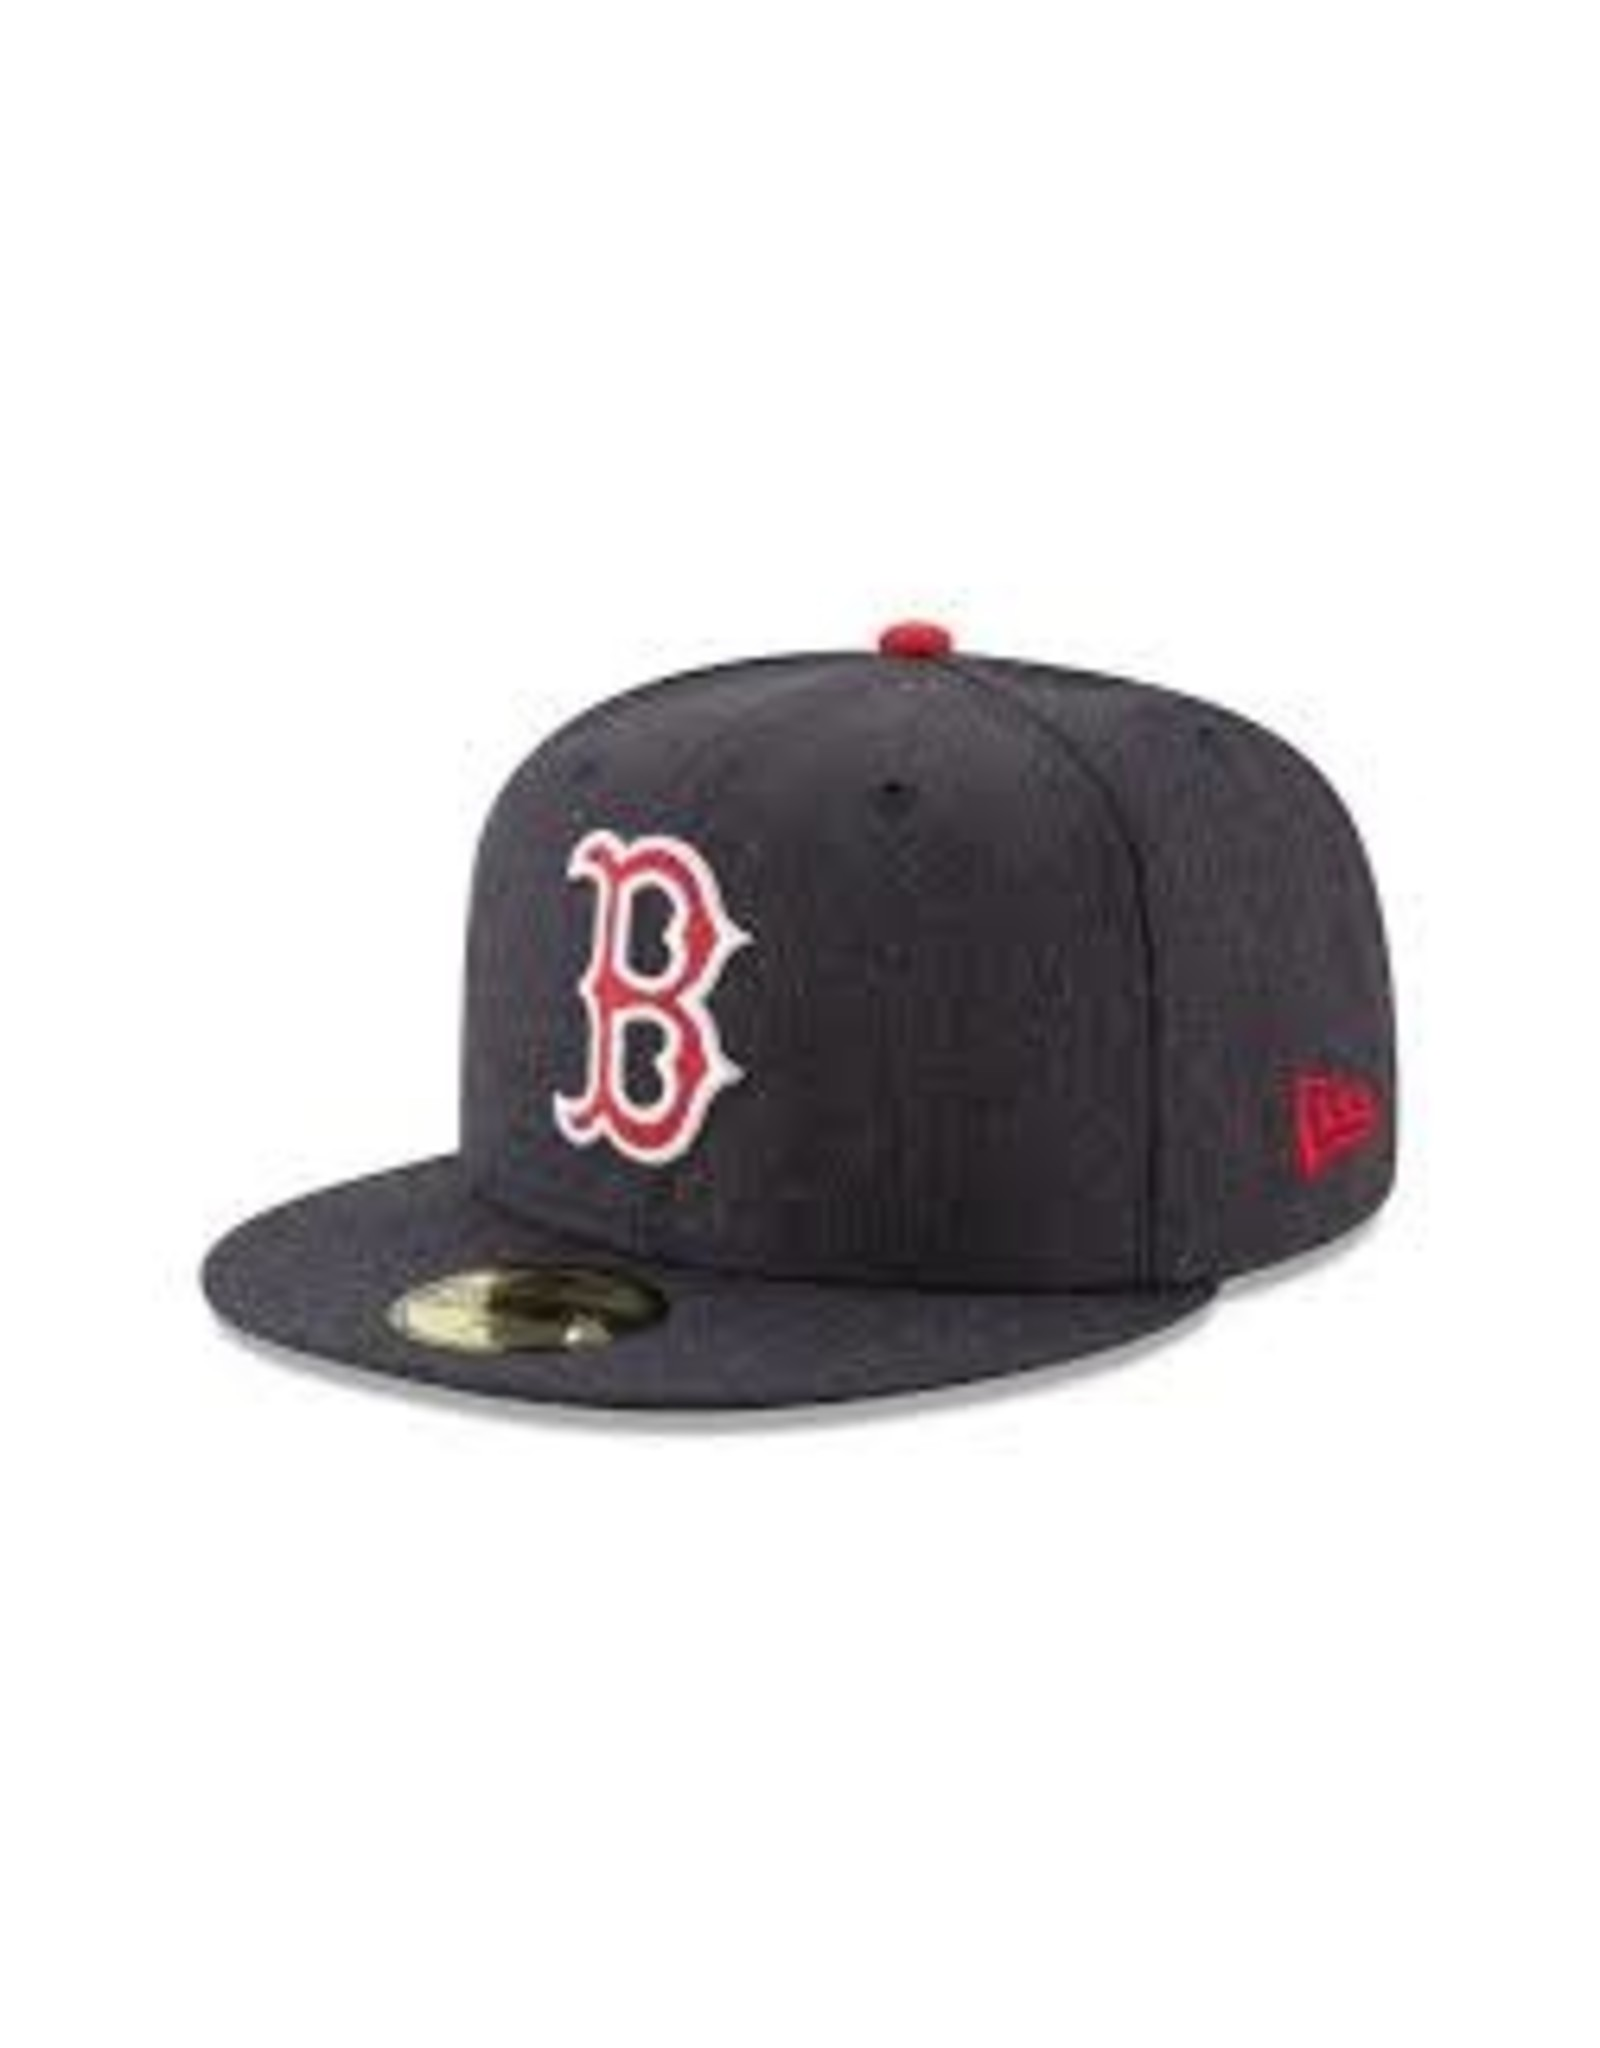 New Era New Era - Red Sox Heather Crisp 3 9FIFTY - Snapback